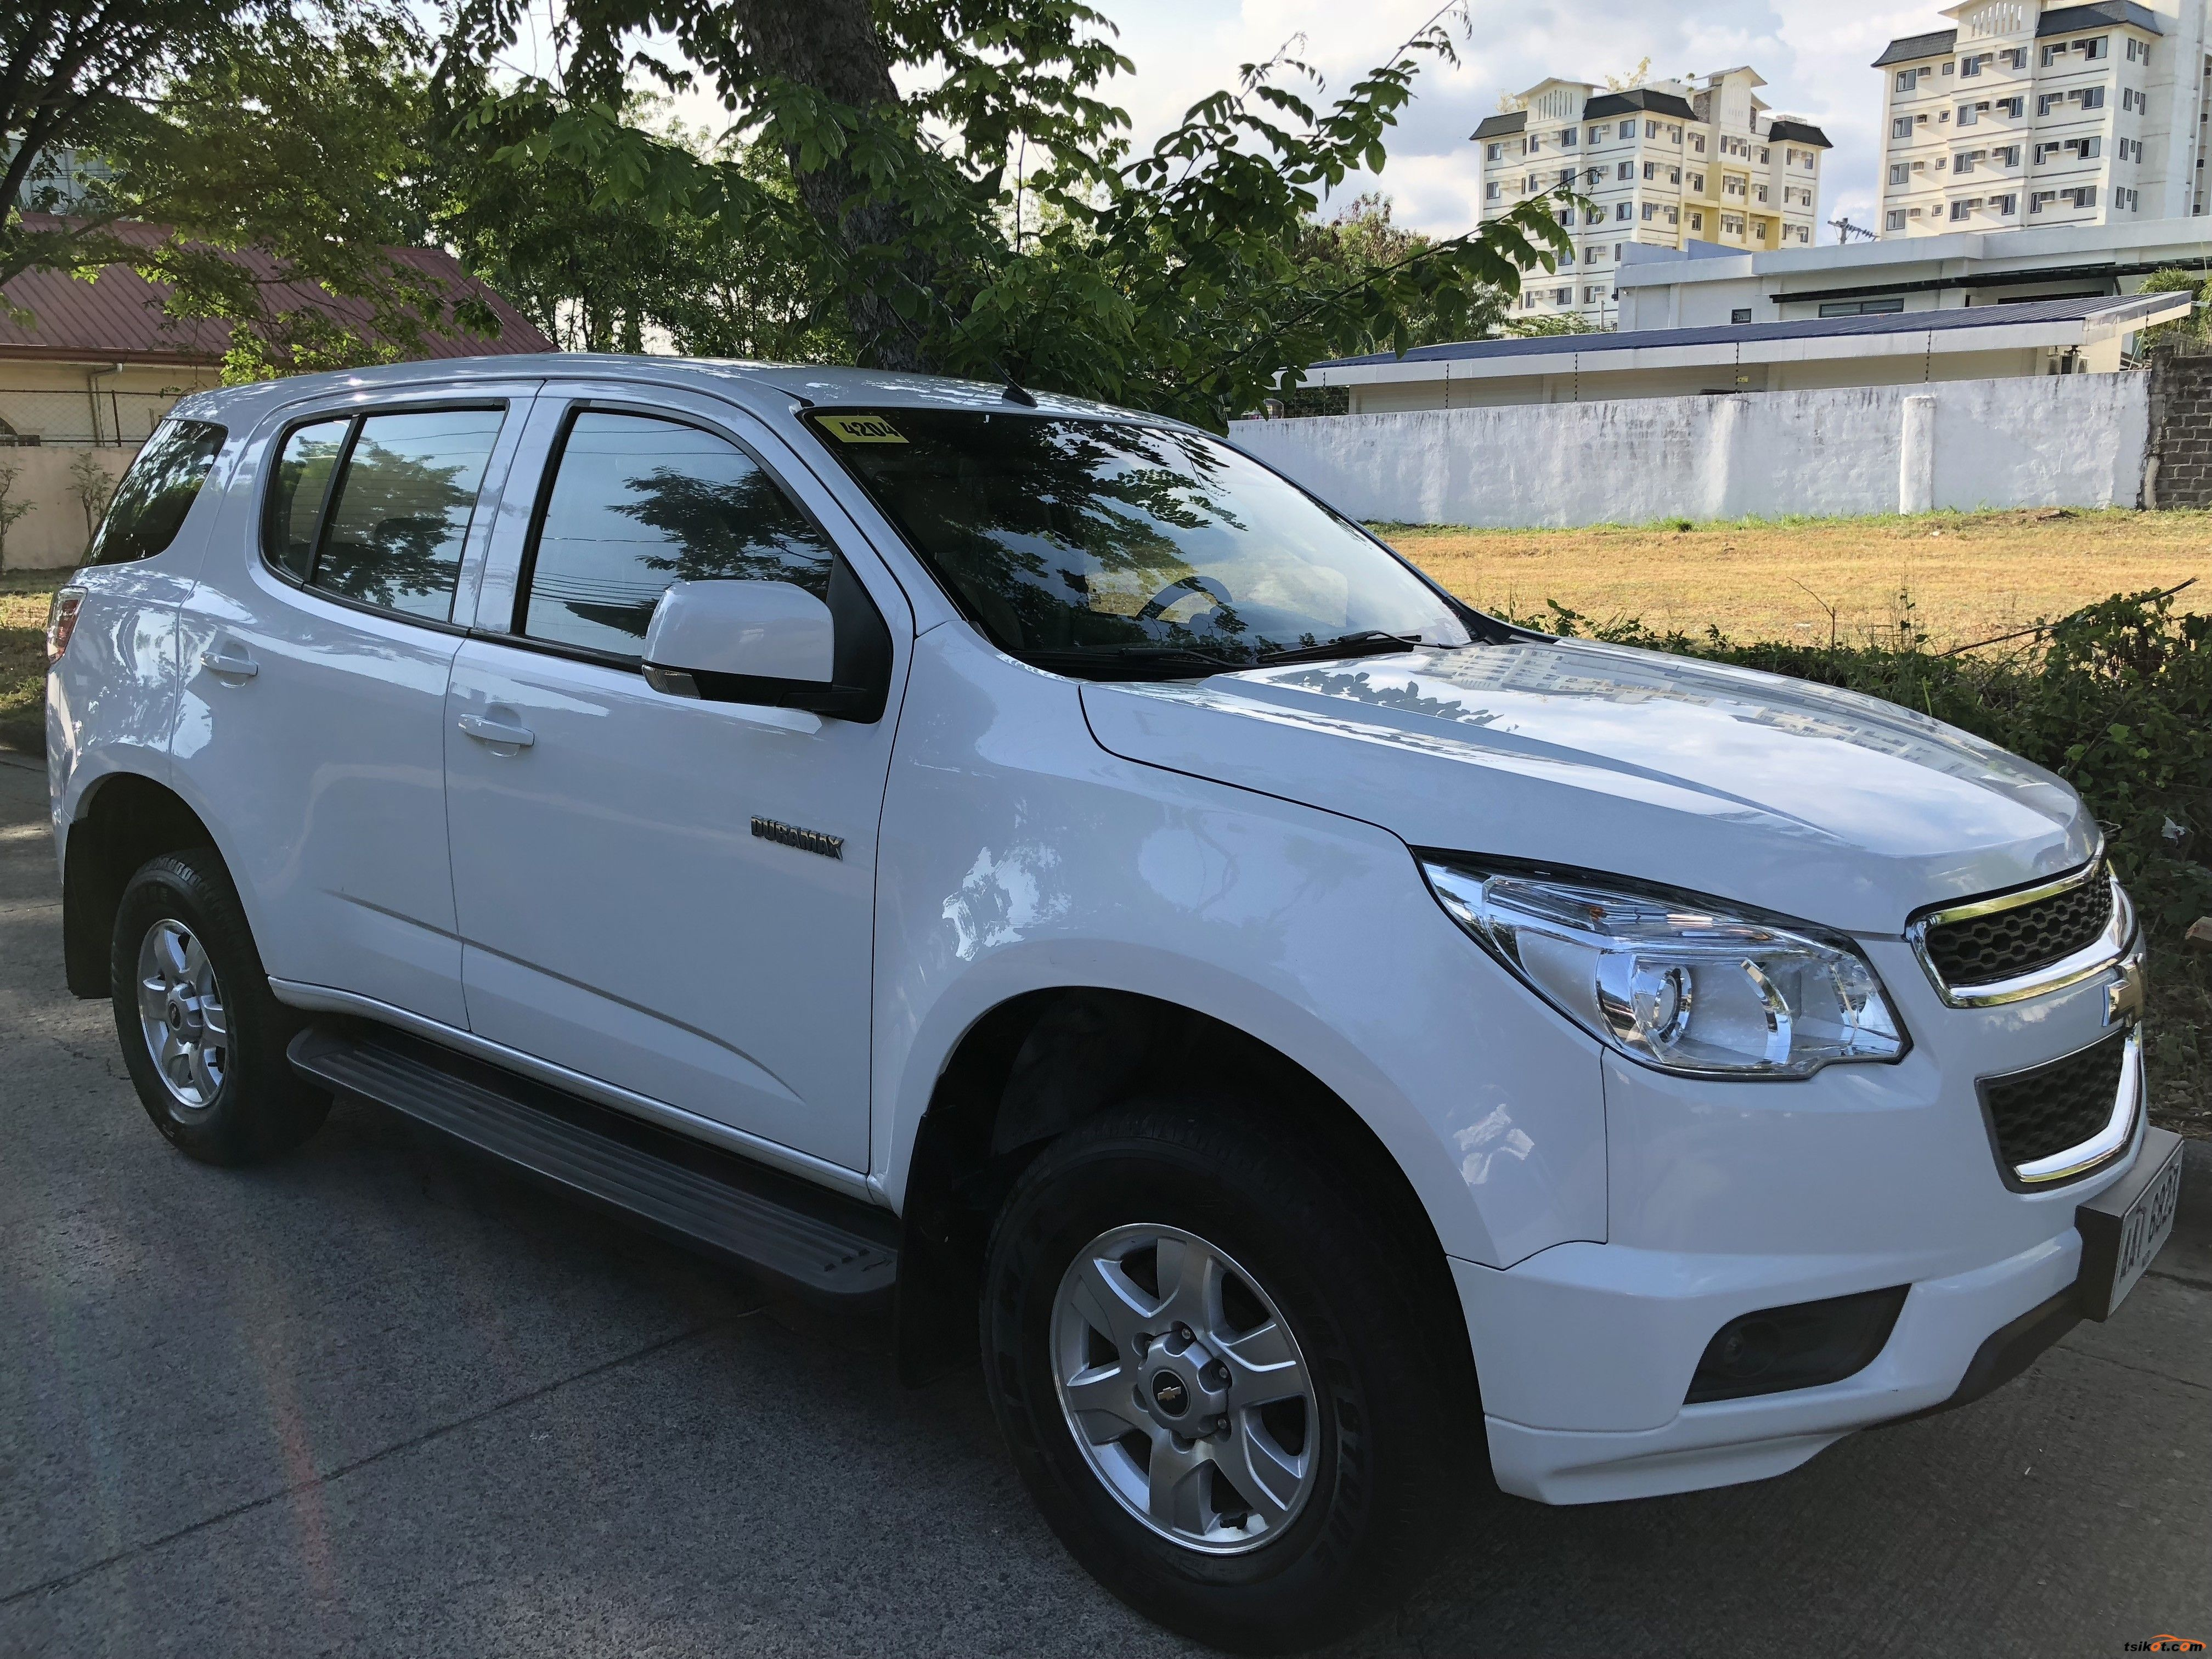 Pin By Tsikot On Tsikot Chevrolet Trailblazer Chevrolet Buy